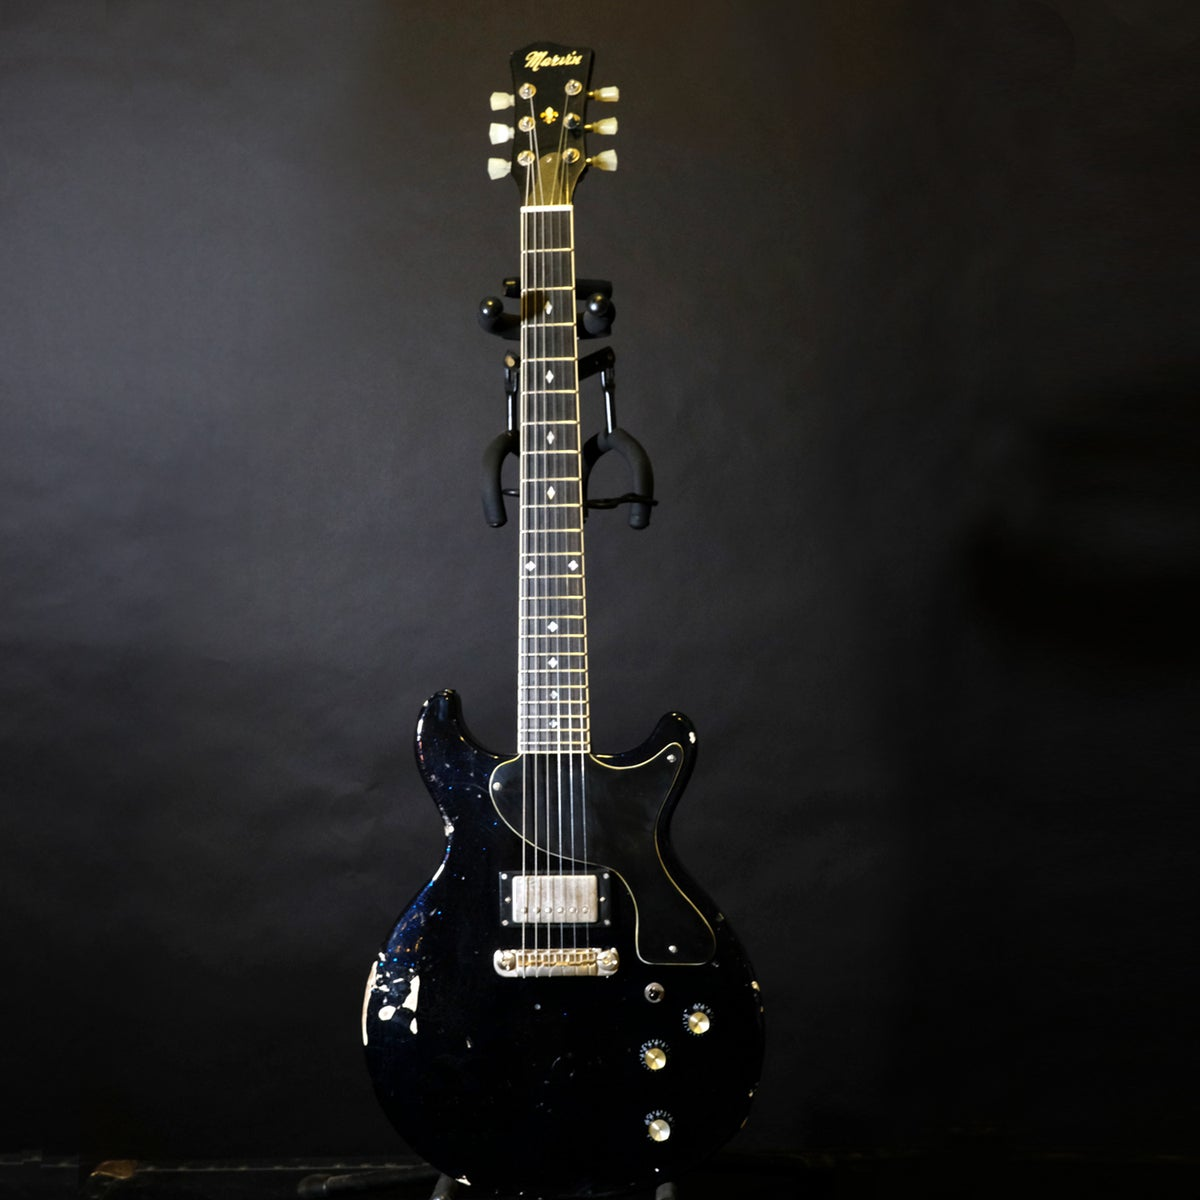 Image of Acey Slade Thunder Jet Guitar in Futuristic Black/Brunswick Blue